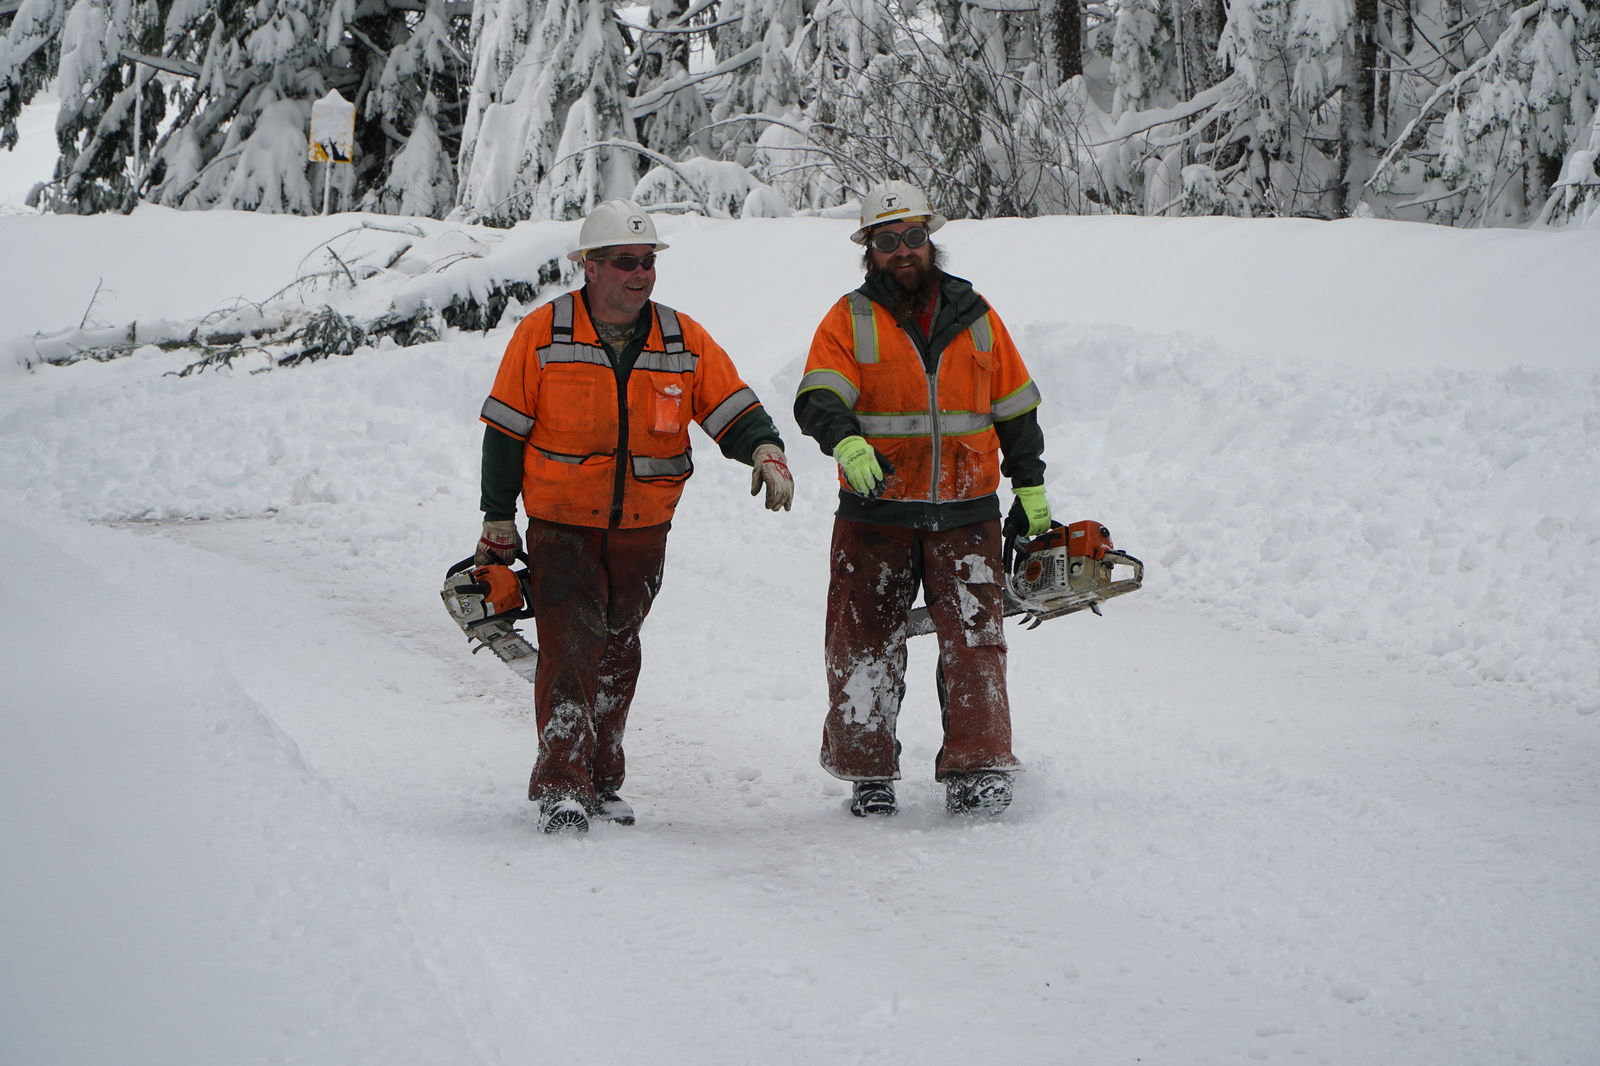 Crews from Glide, Steamboat and Prospect worked to clear OR 62, OR 138 and OR 230 following a snowstorm. (ODOT CC by 2.0)